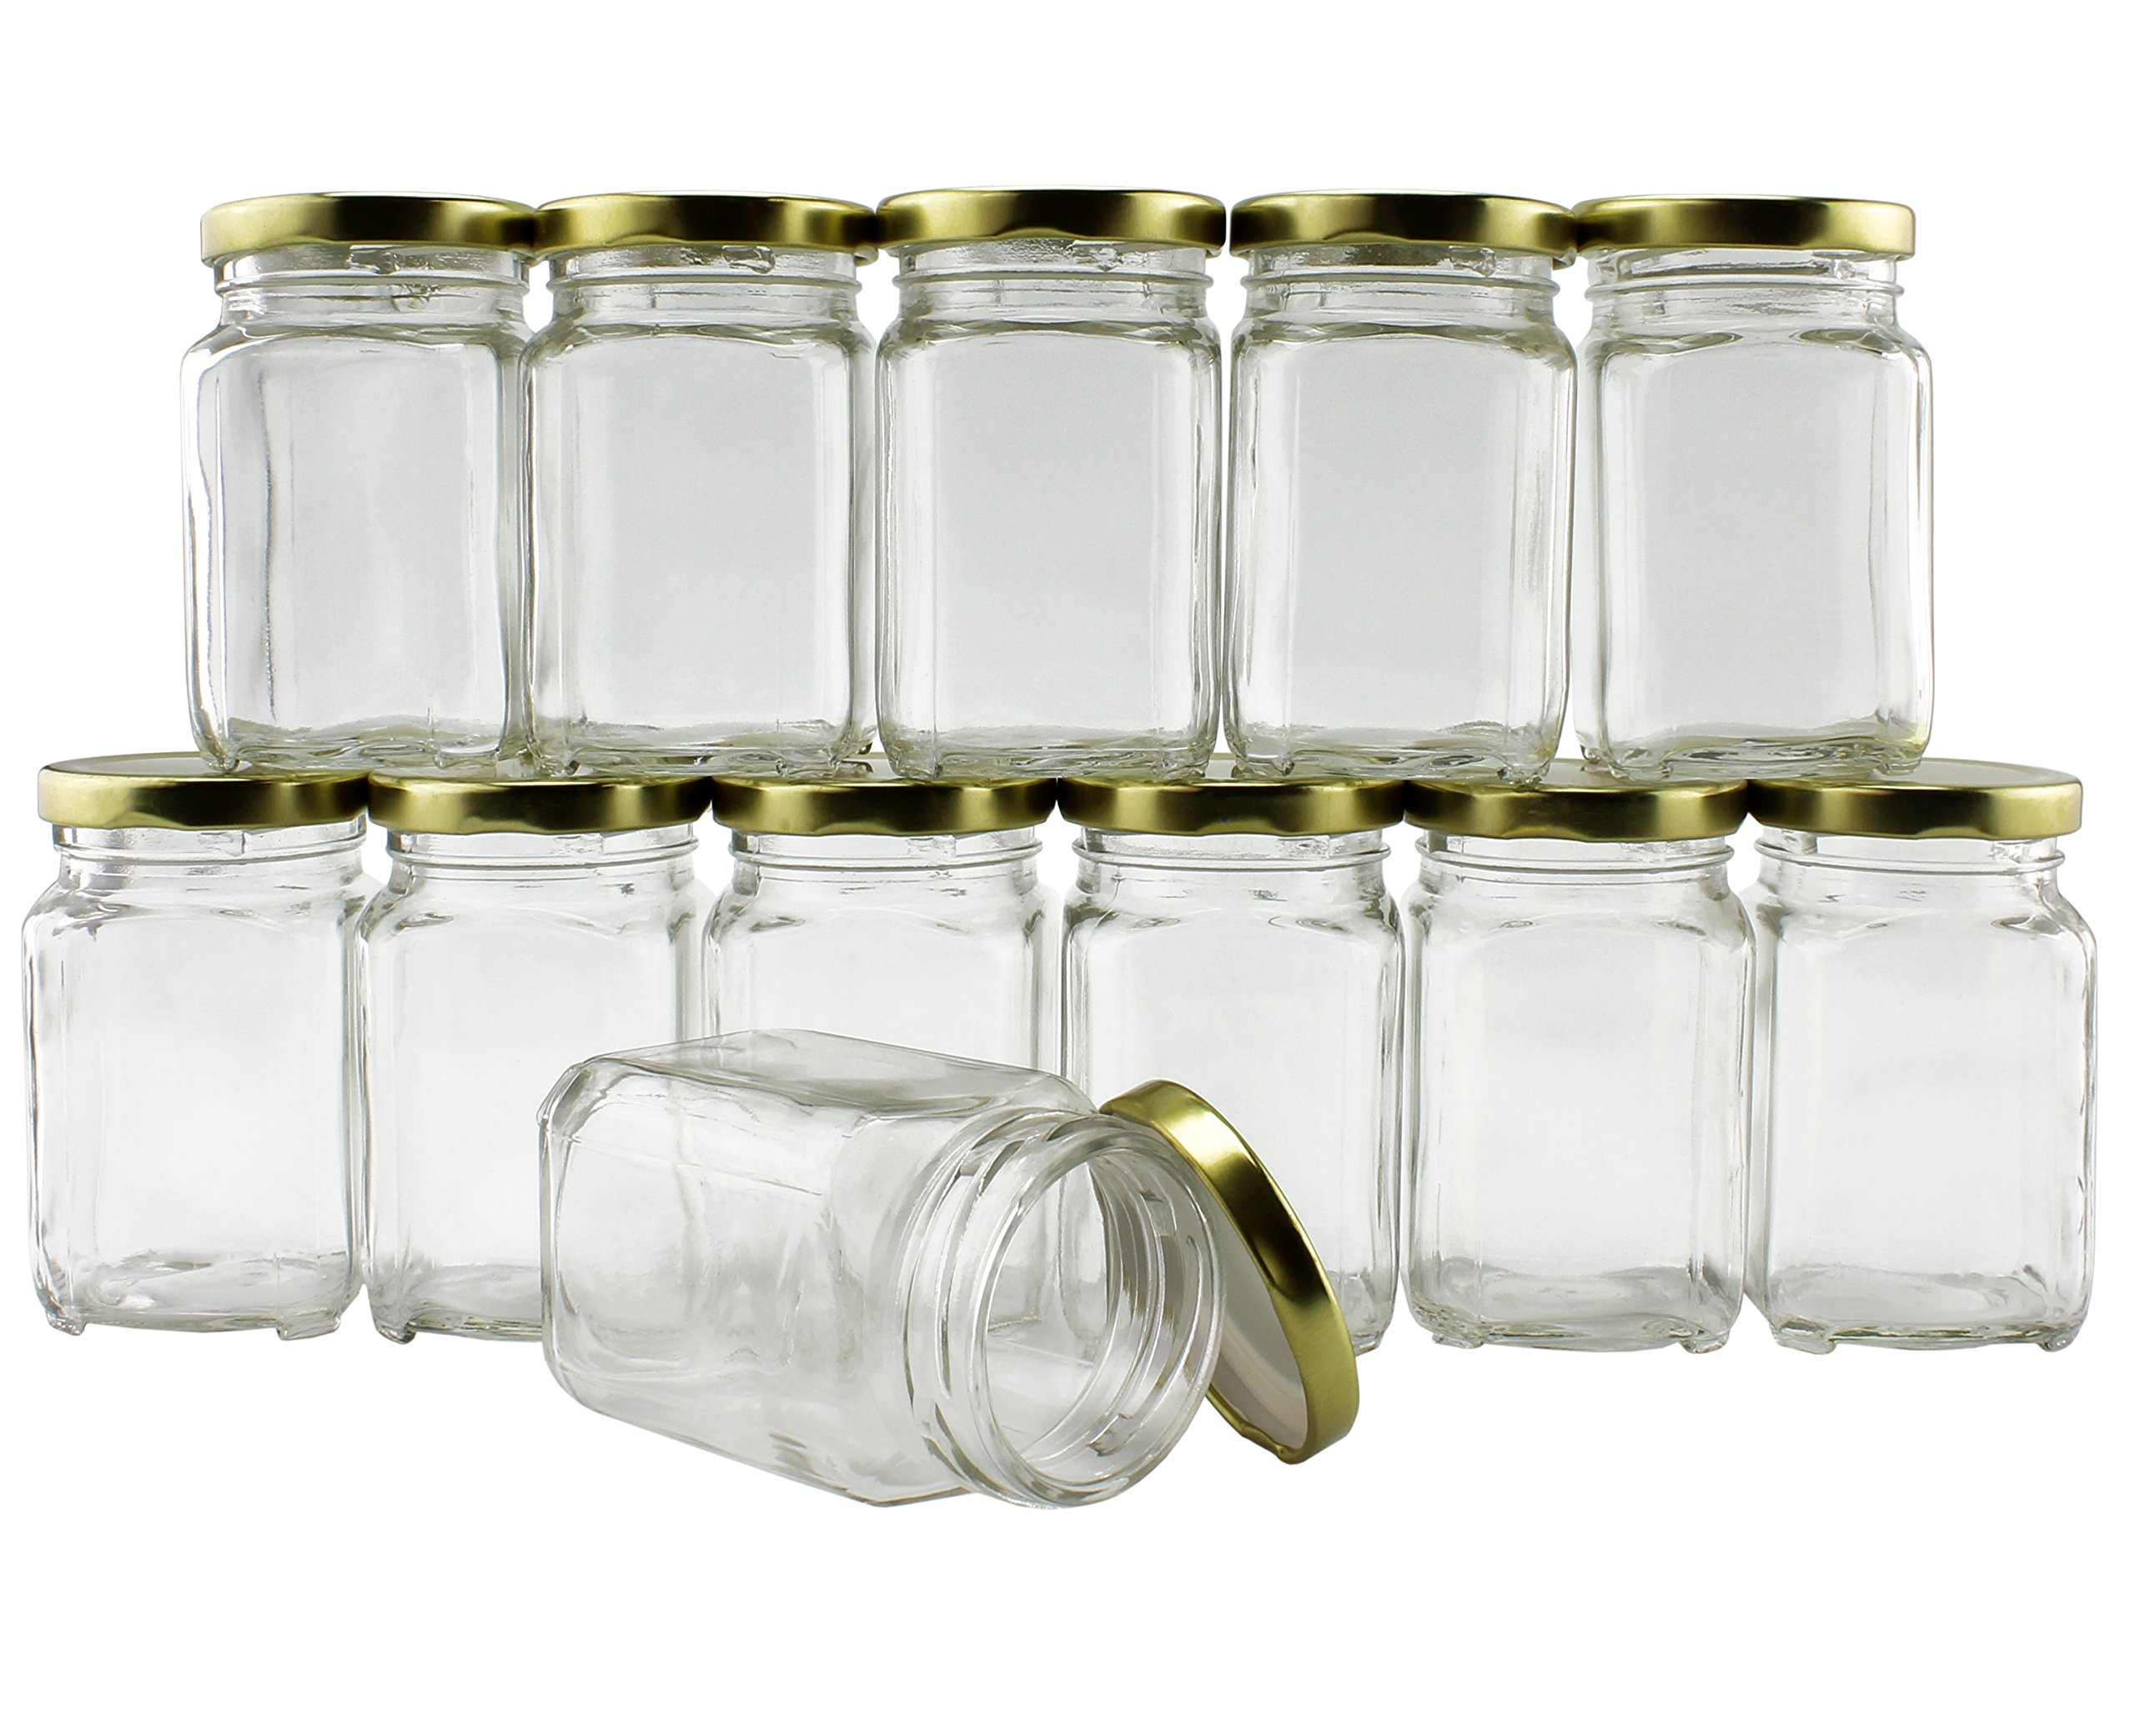 6-Ounce Square Victorian Jars (12-Pack), Bulk Value Pack of Steampunk Square Glass Jars with Screw-On Lids, Ideal for Spice Storage, Wedding and Party Favors, DIY Projects & More! (Set of 12)